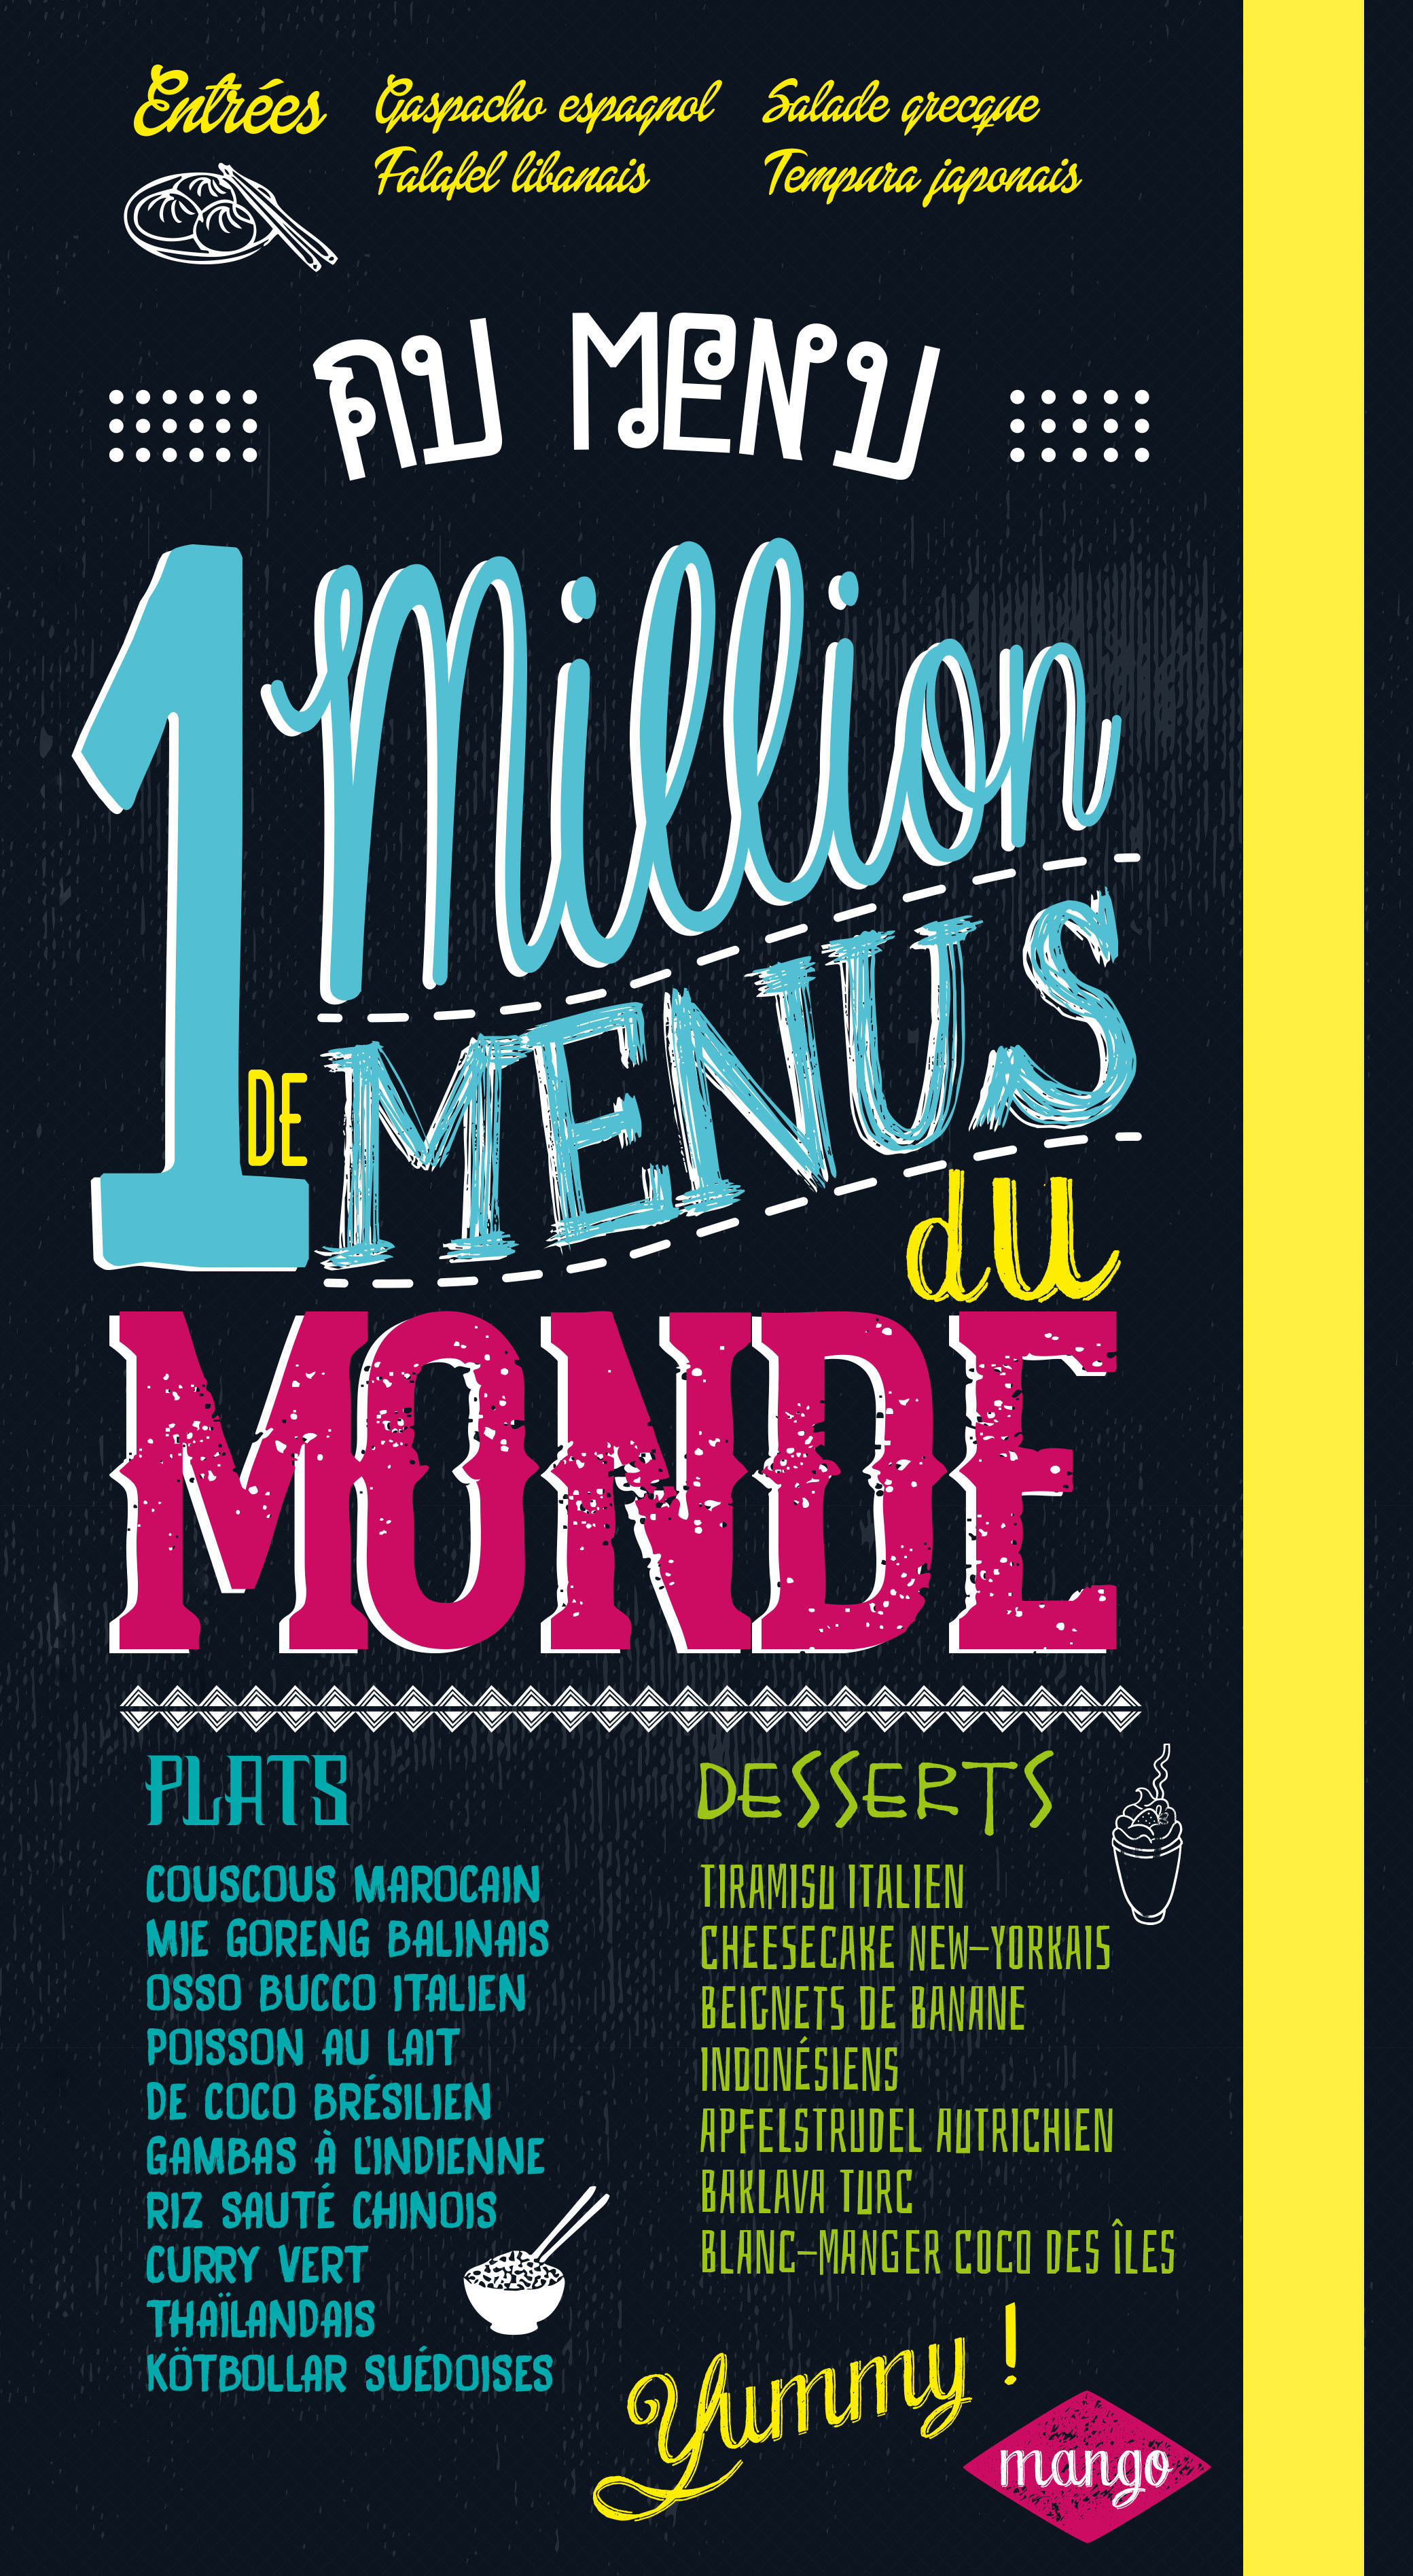 1 MILLION DE MENUS DU MONDE AU CHOIX